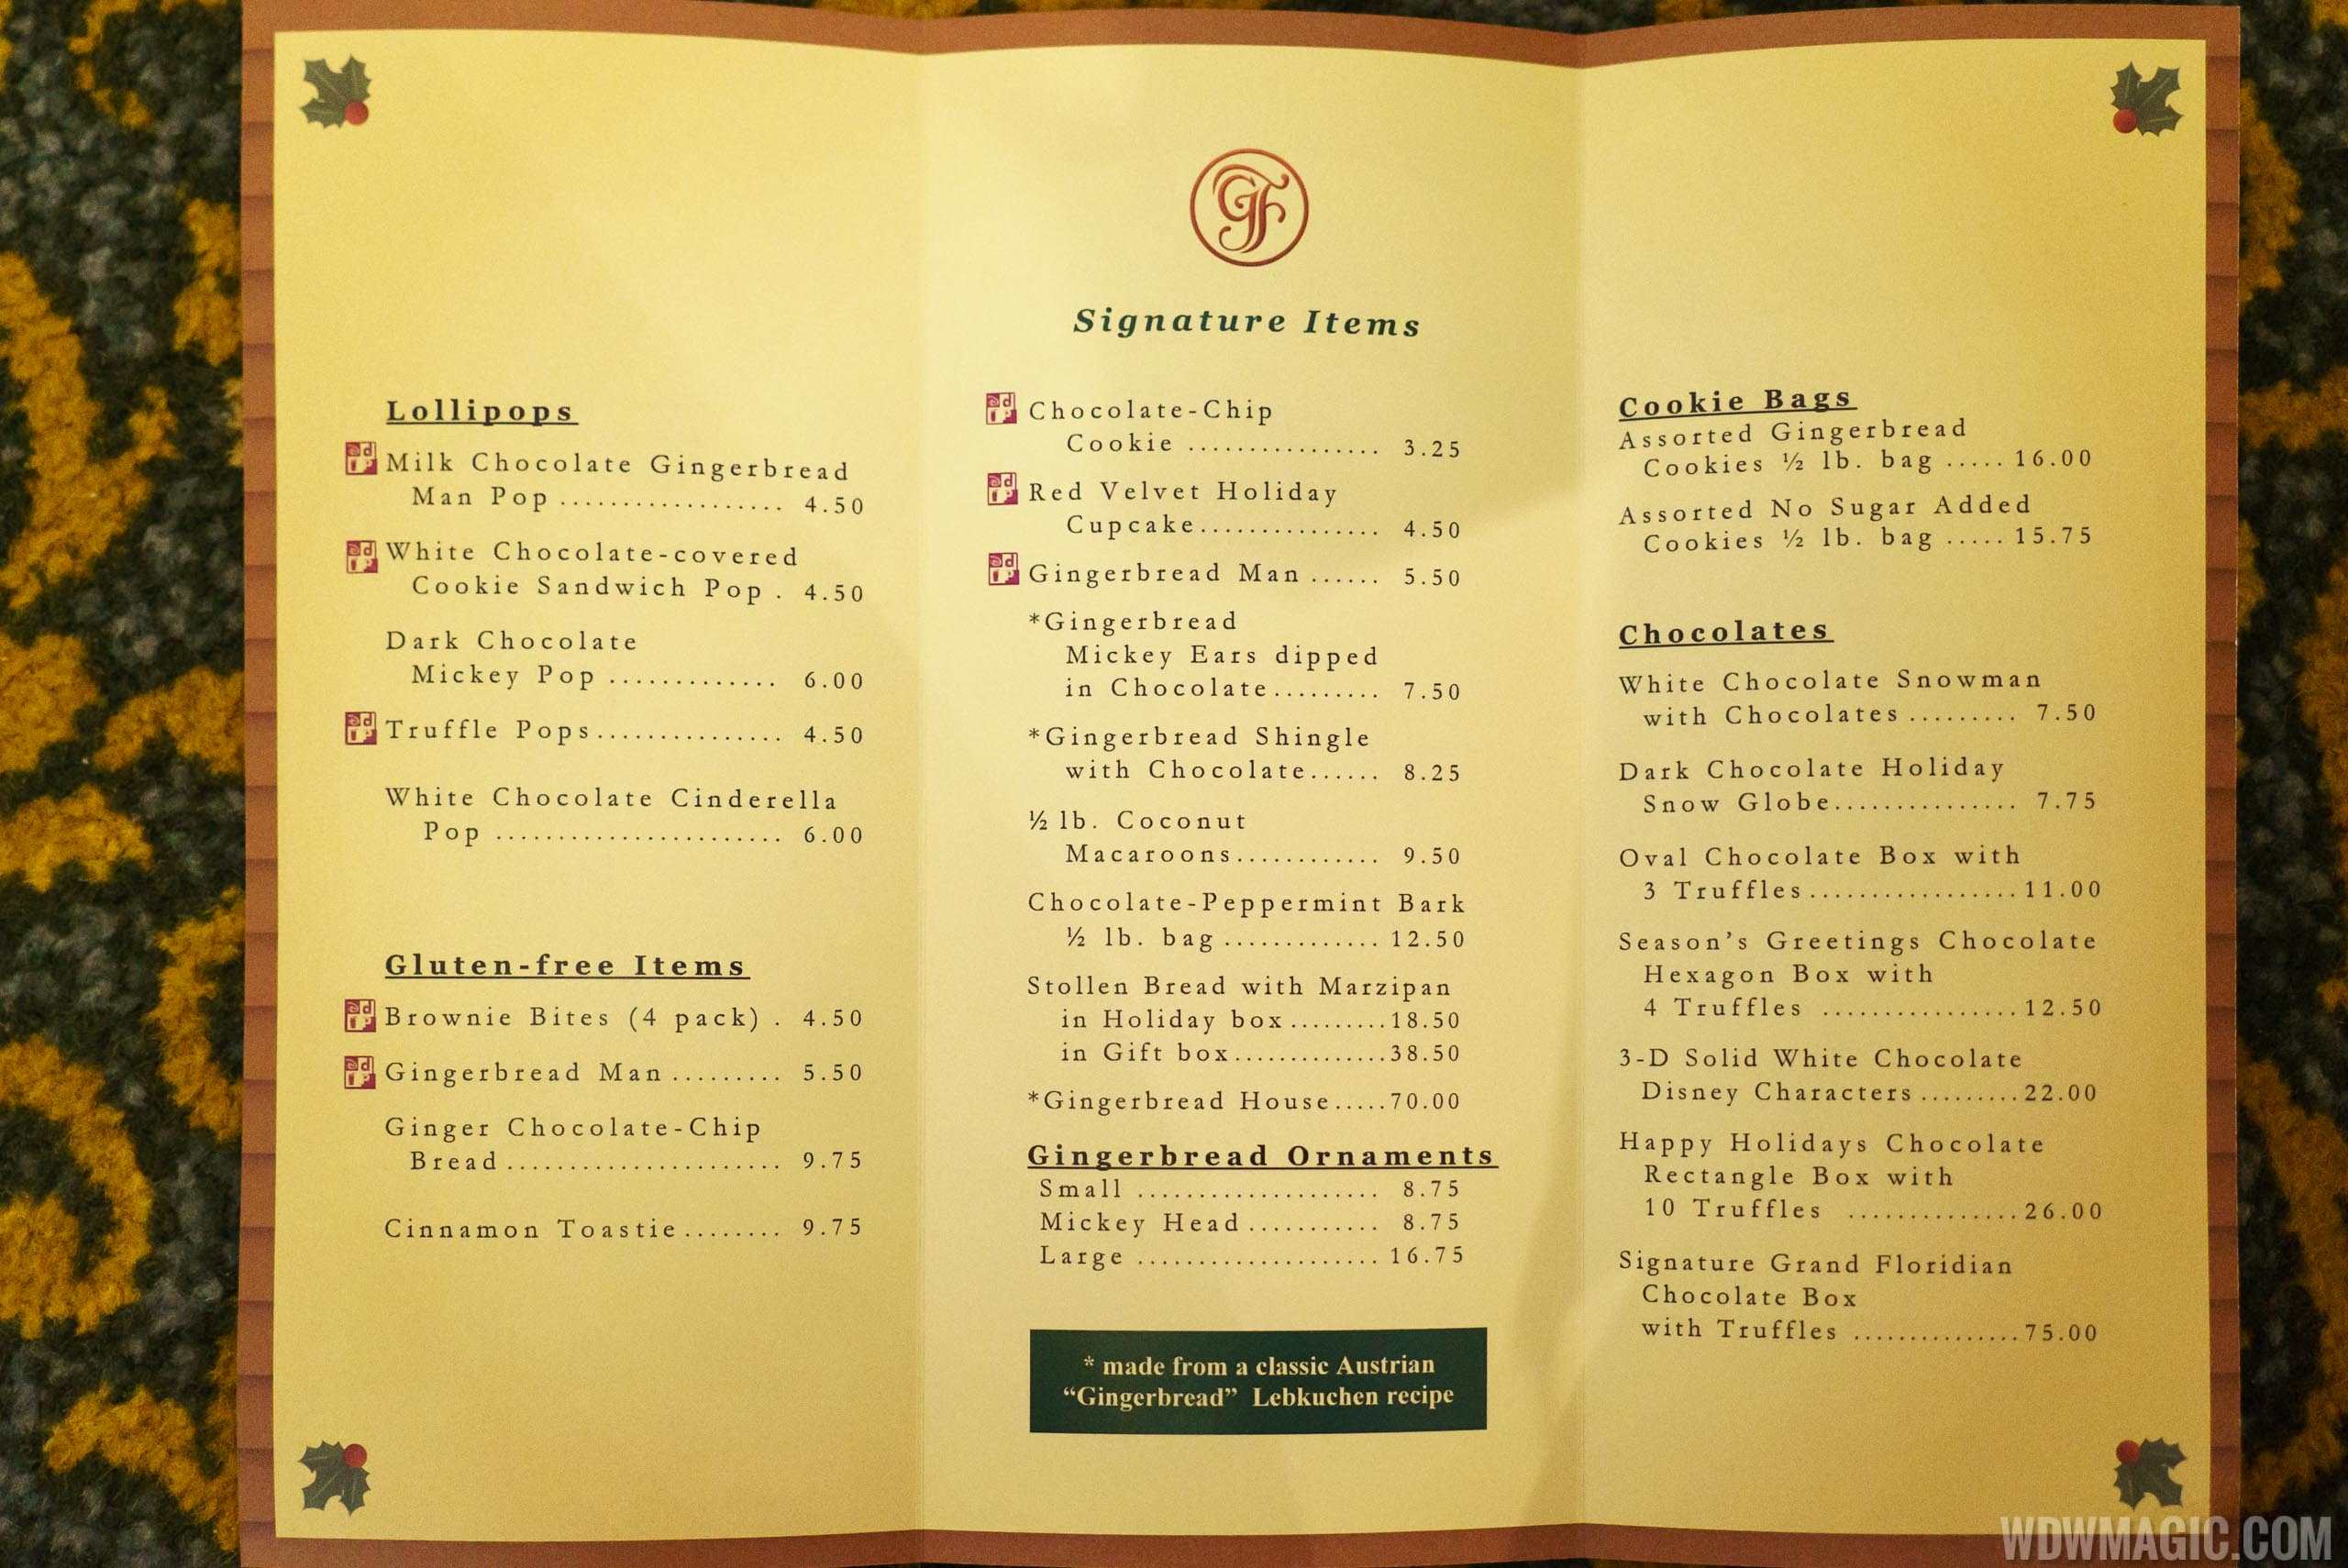 2015 Grand Floridian Gingerbread House menu